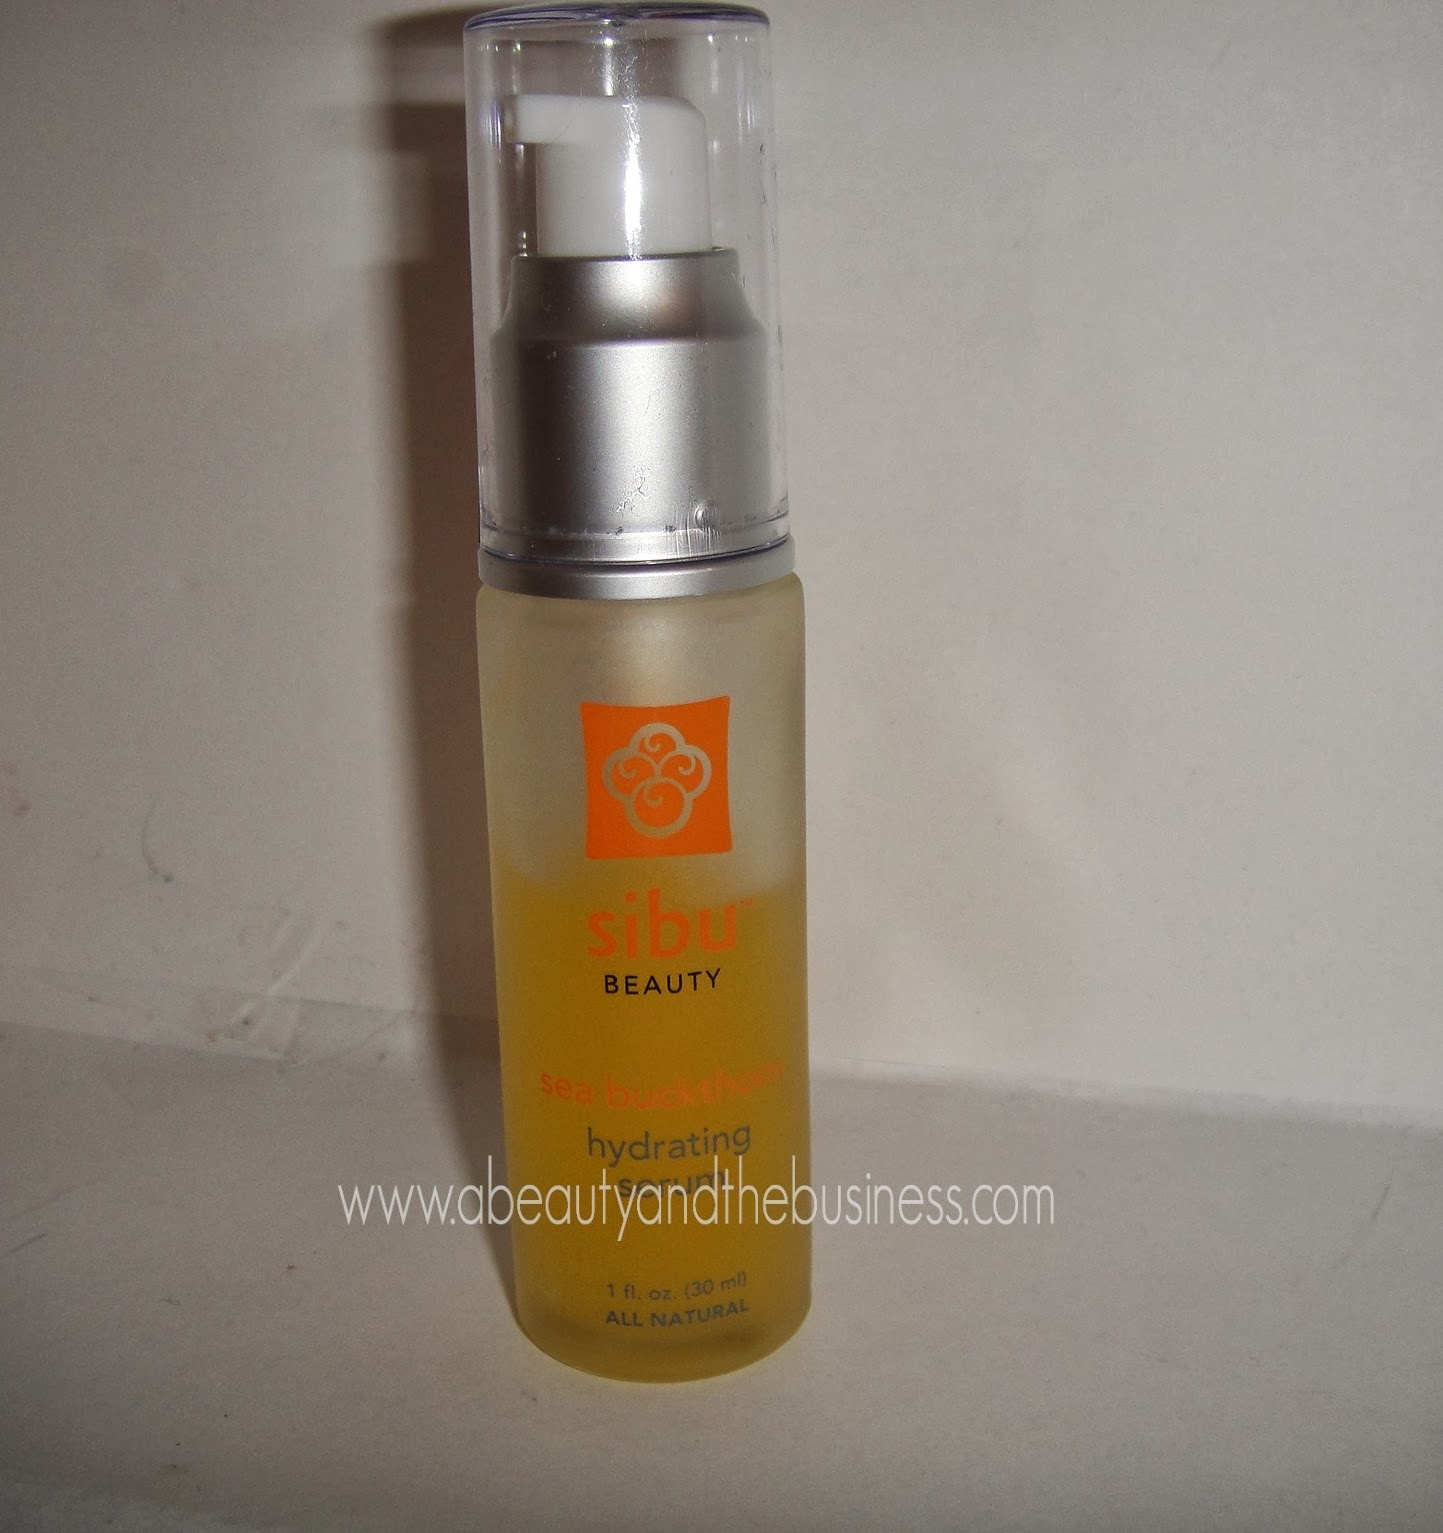 sibu, sibu beauty, SEA BUCKTHORN HYDRATING SERUM, SEA BUCKTHORN HYDRATING SERUM review, SEA BUCKTHORN HYDRATING SERUM sample, serum review, sibu serum review,